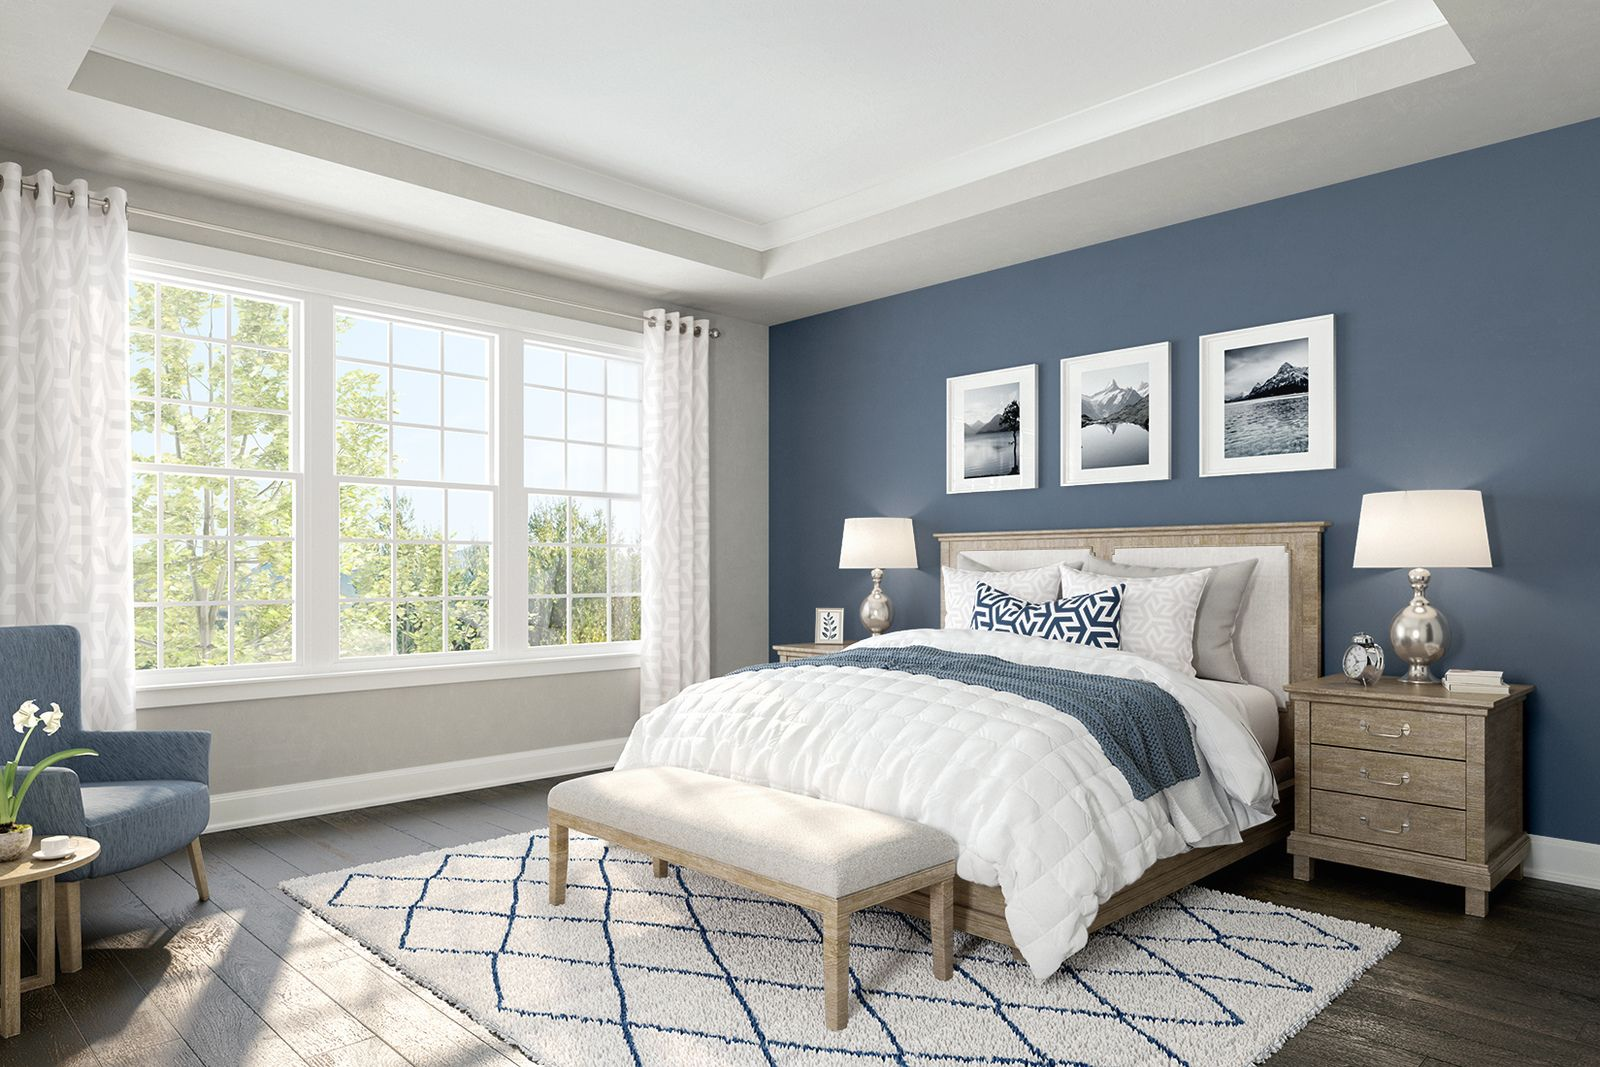 Bedroom featured in the Clarkson By NVHomes in Philadelphia, PA